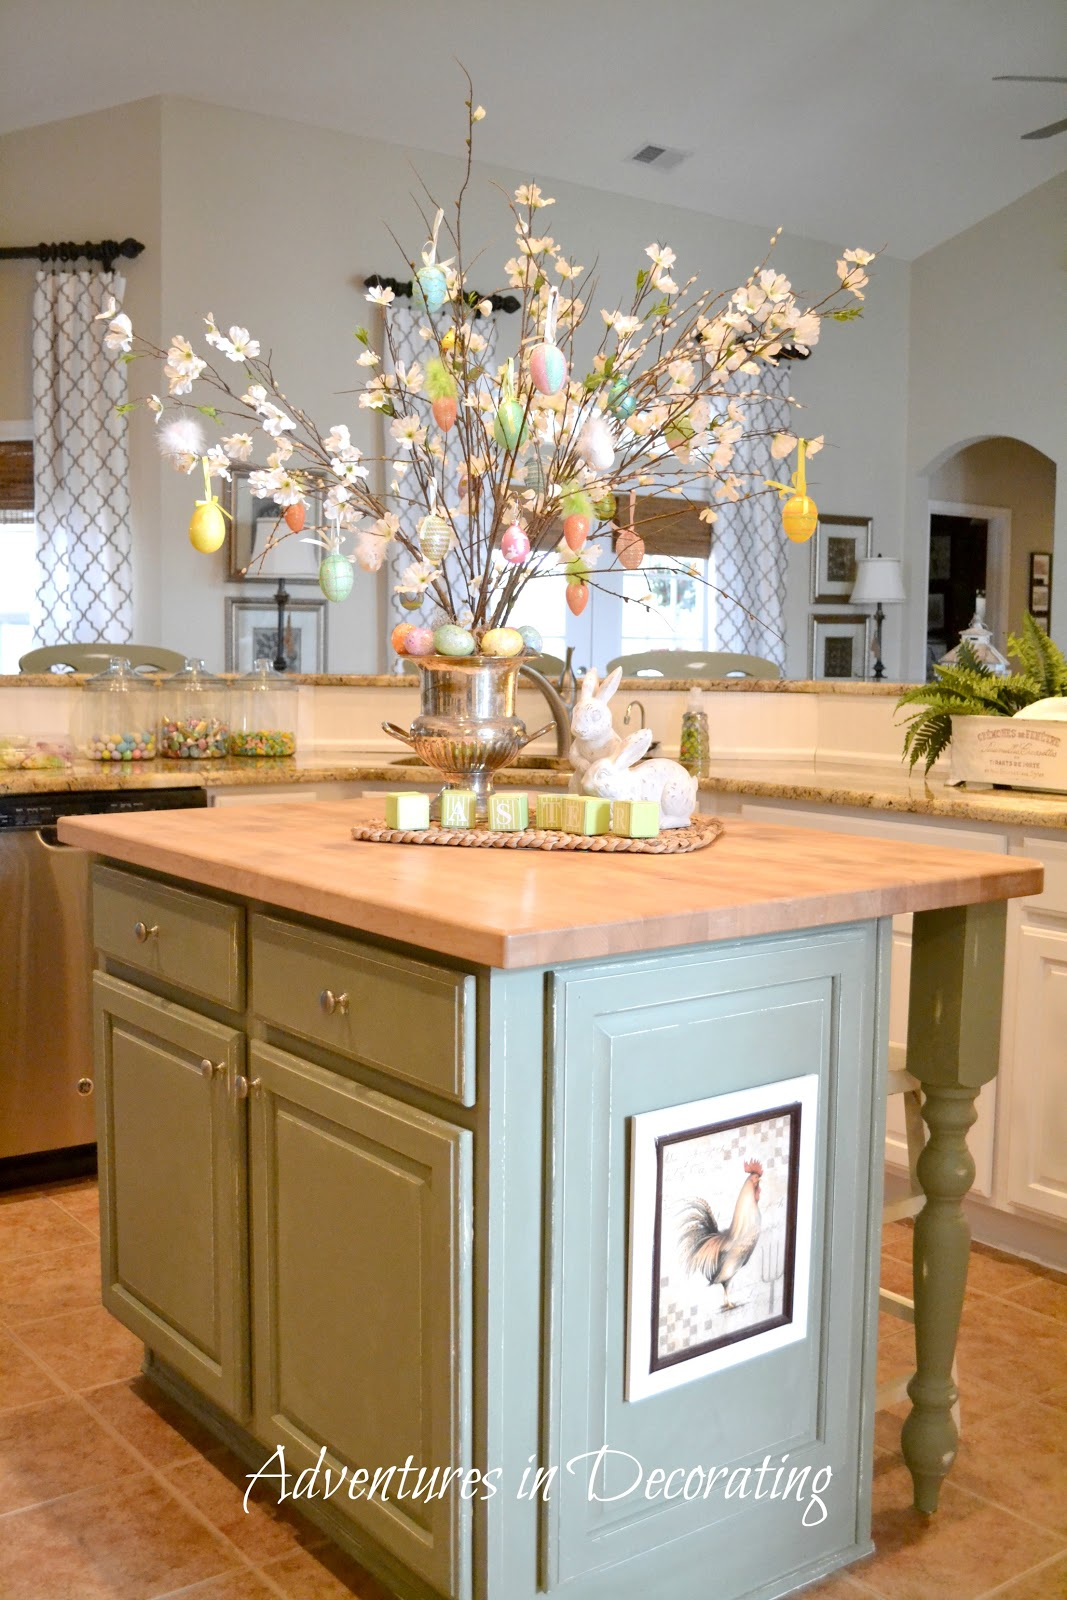 Kitchen Island Decorating Ideas Adventures In Decorating: Flowers Are Blooming In The Kitchen!